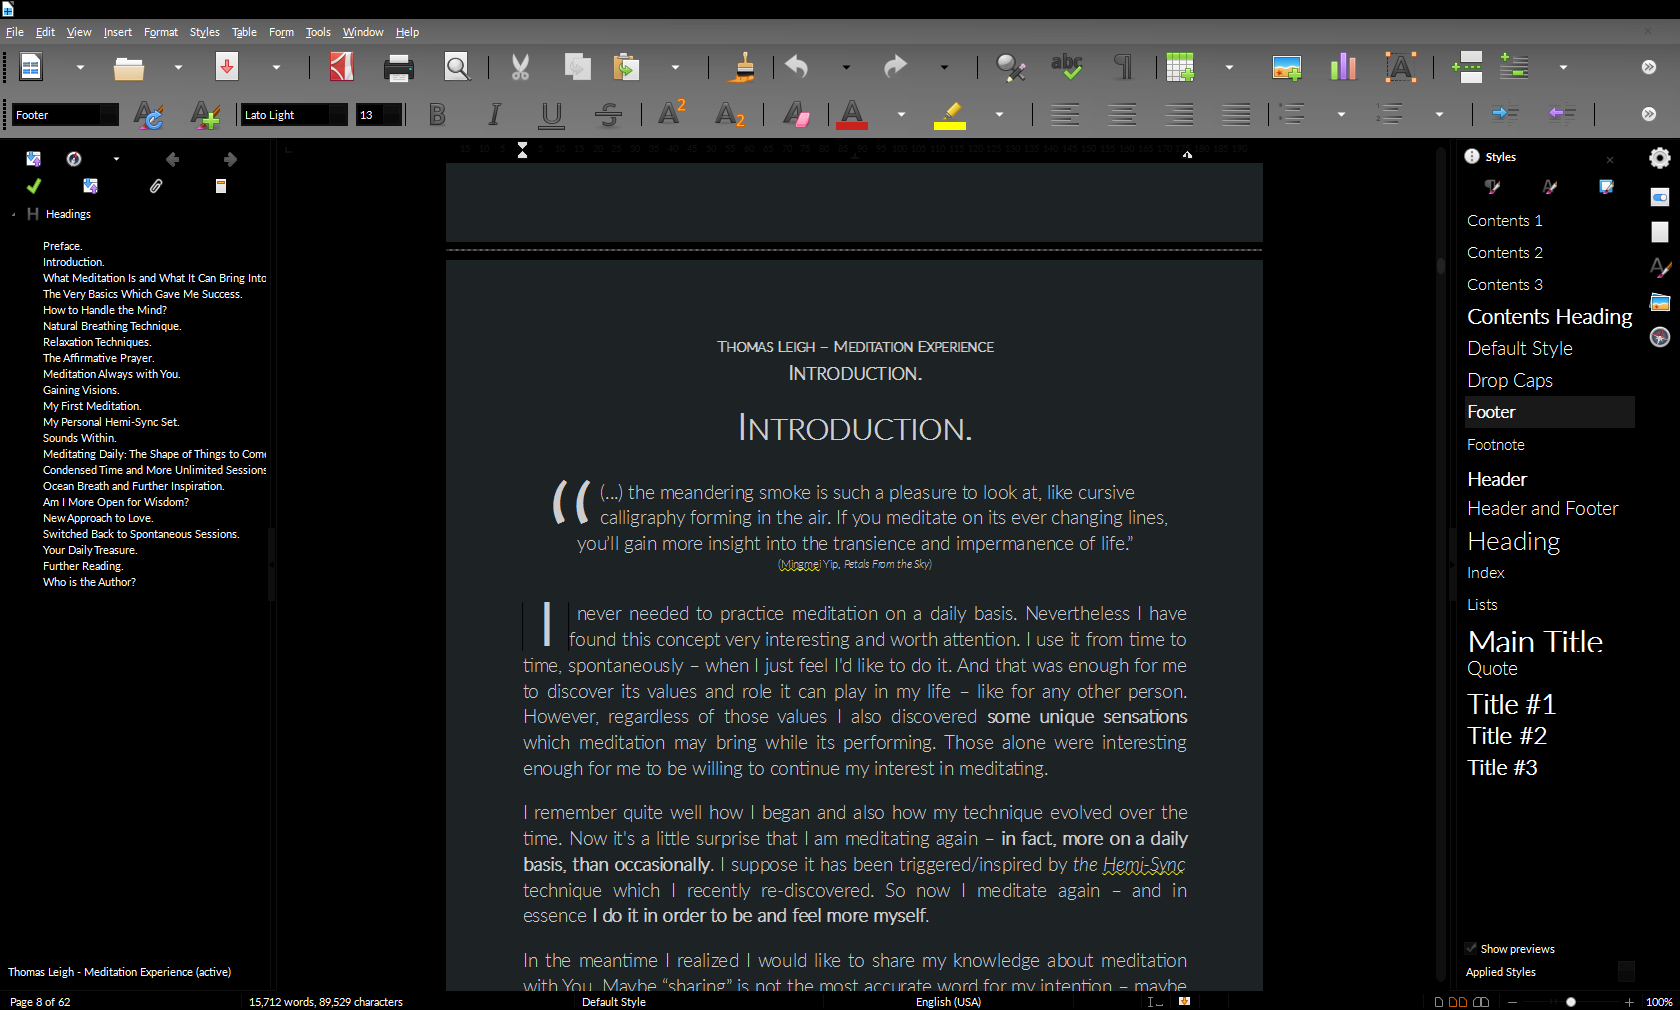 My book within LibreOffice Writer.